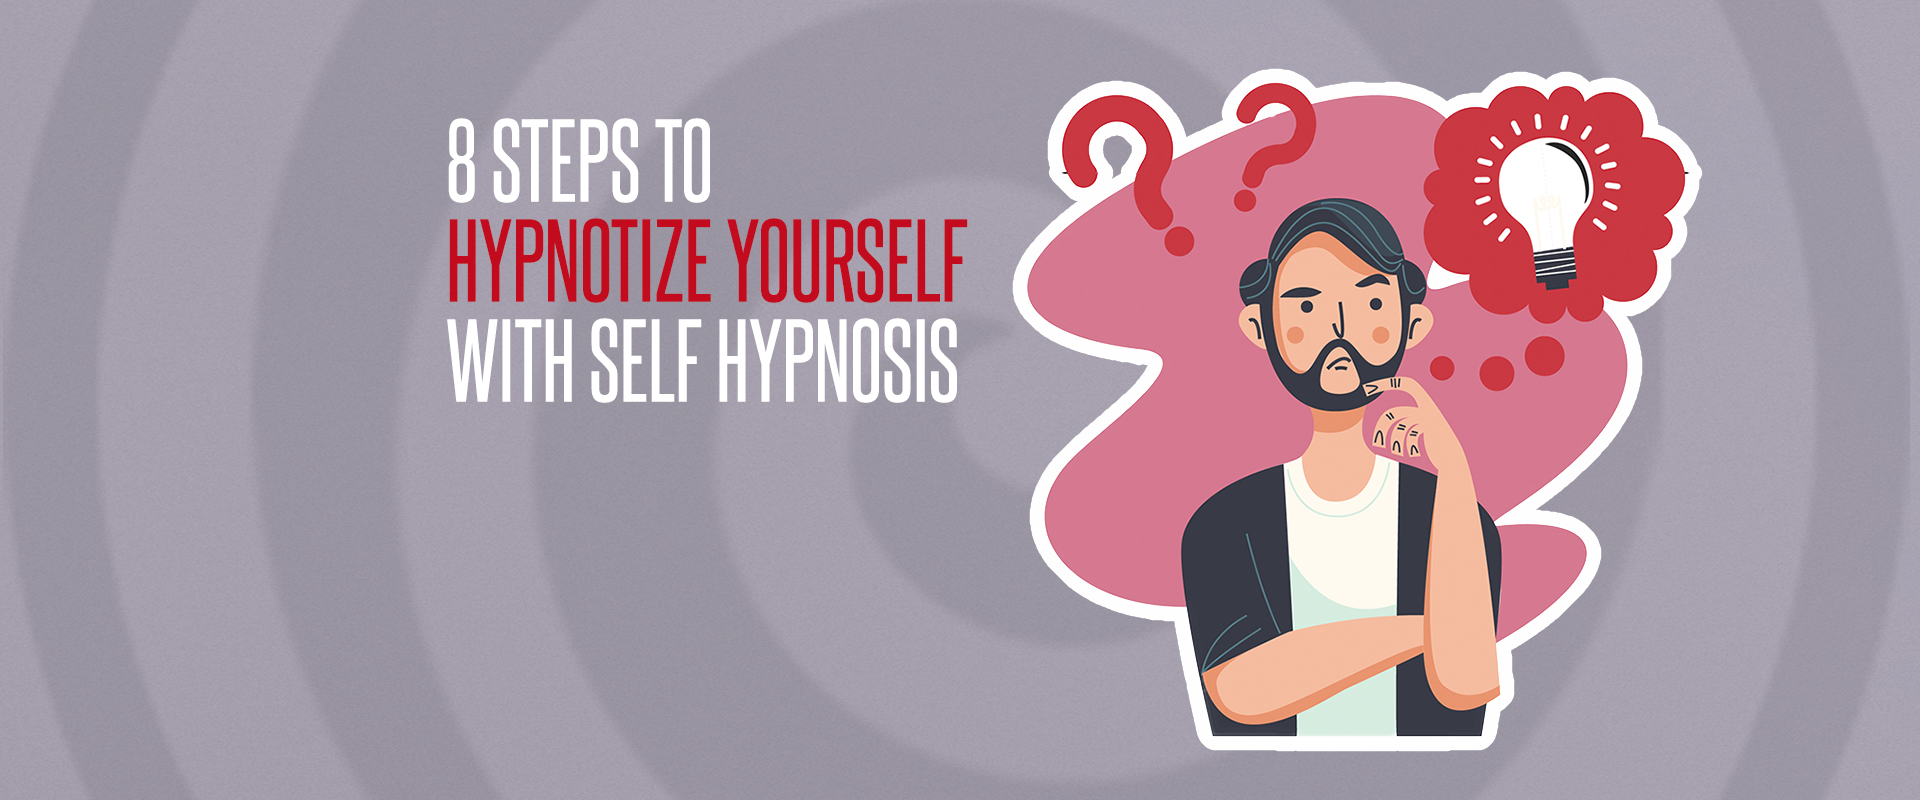 8 steps to hypnotize yourself banner